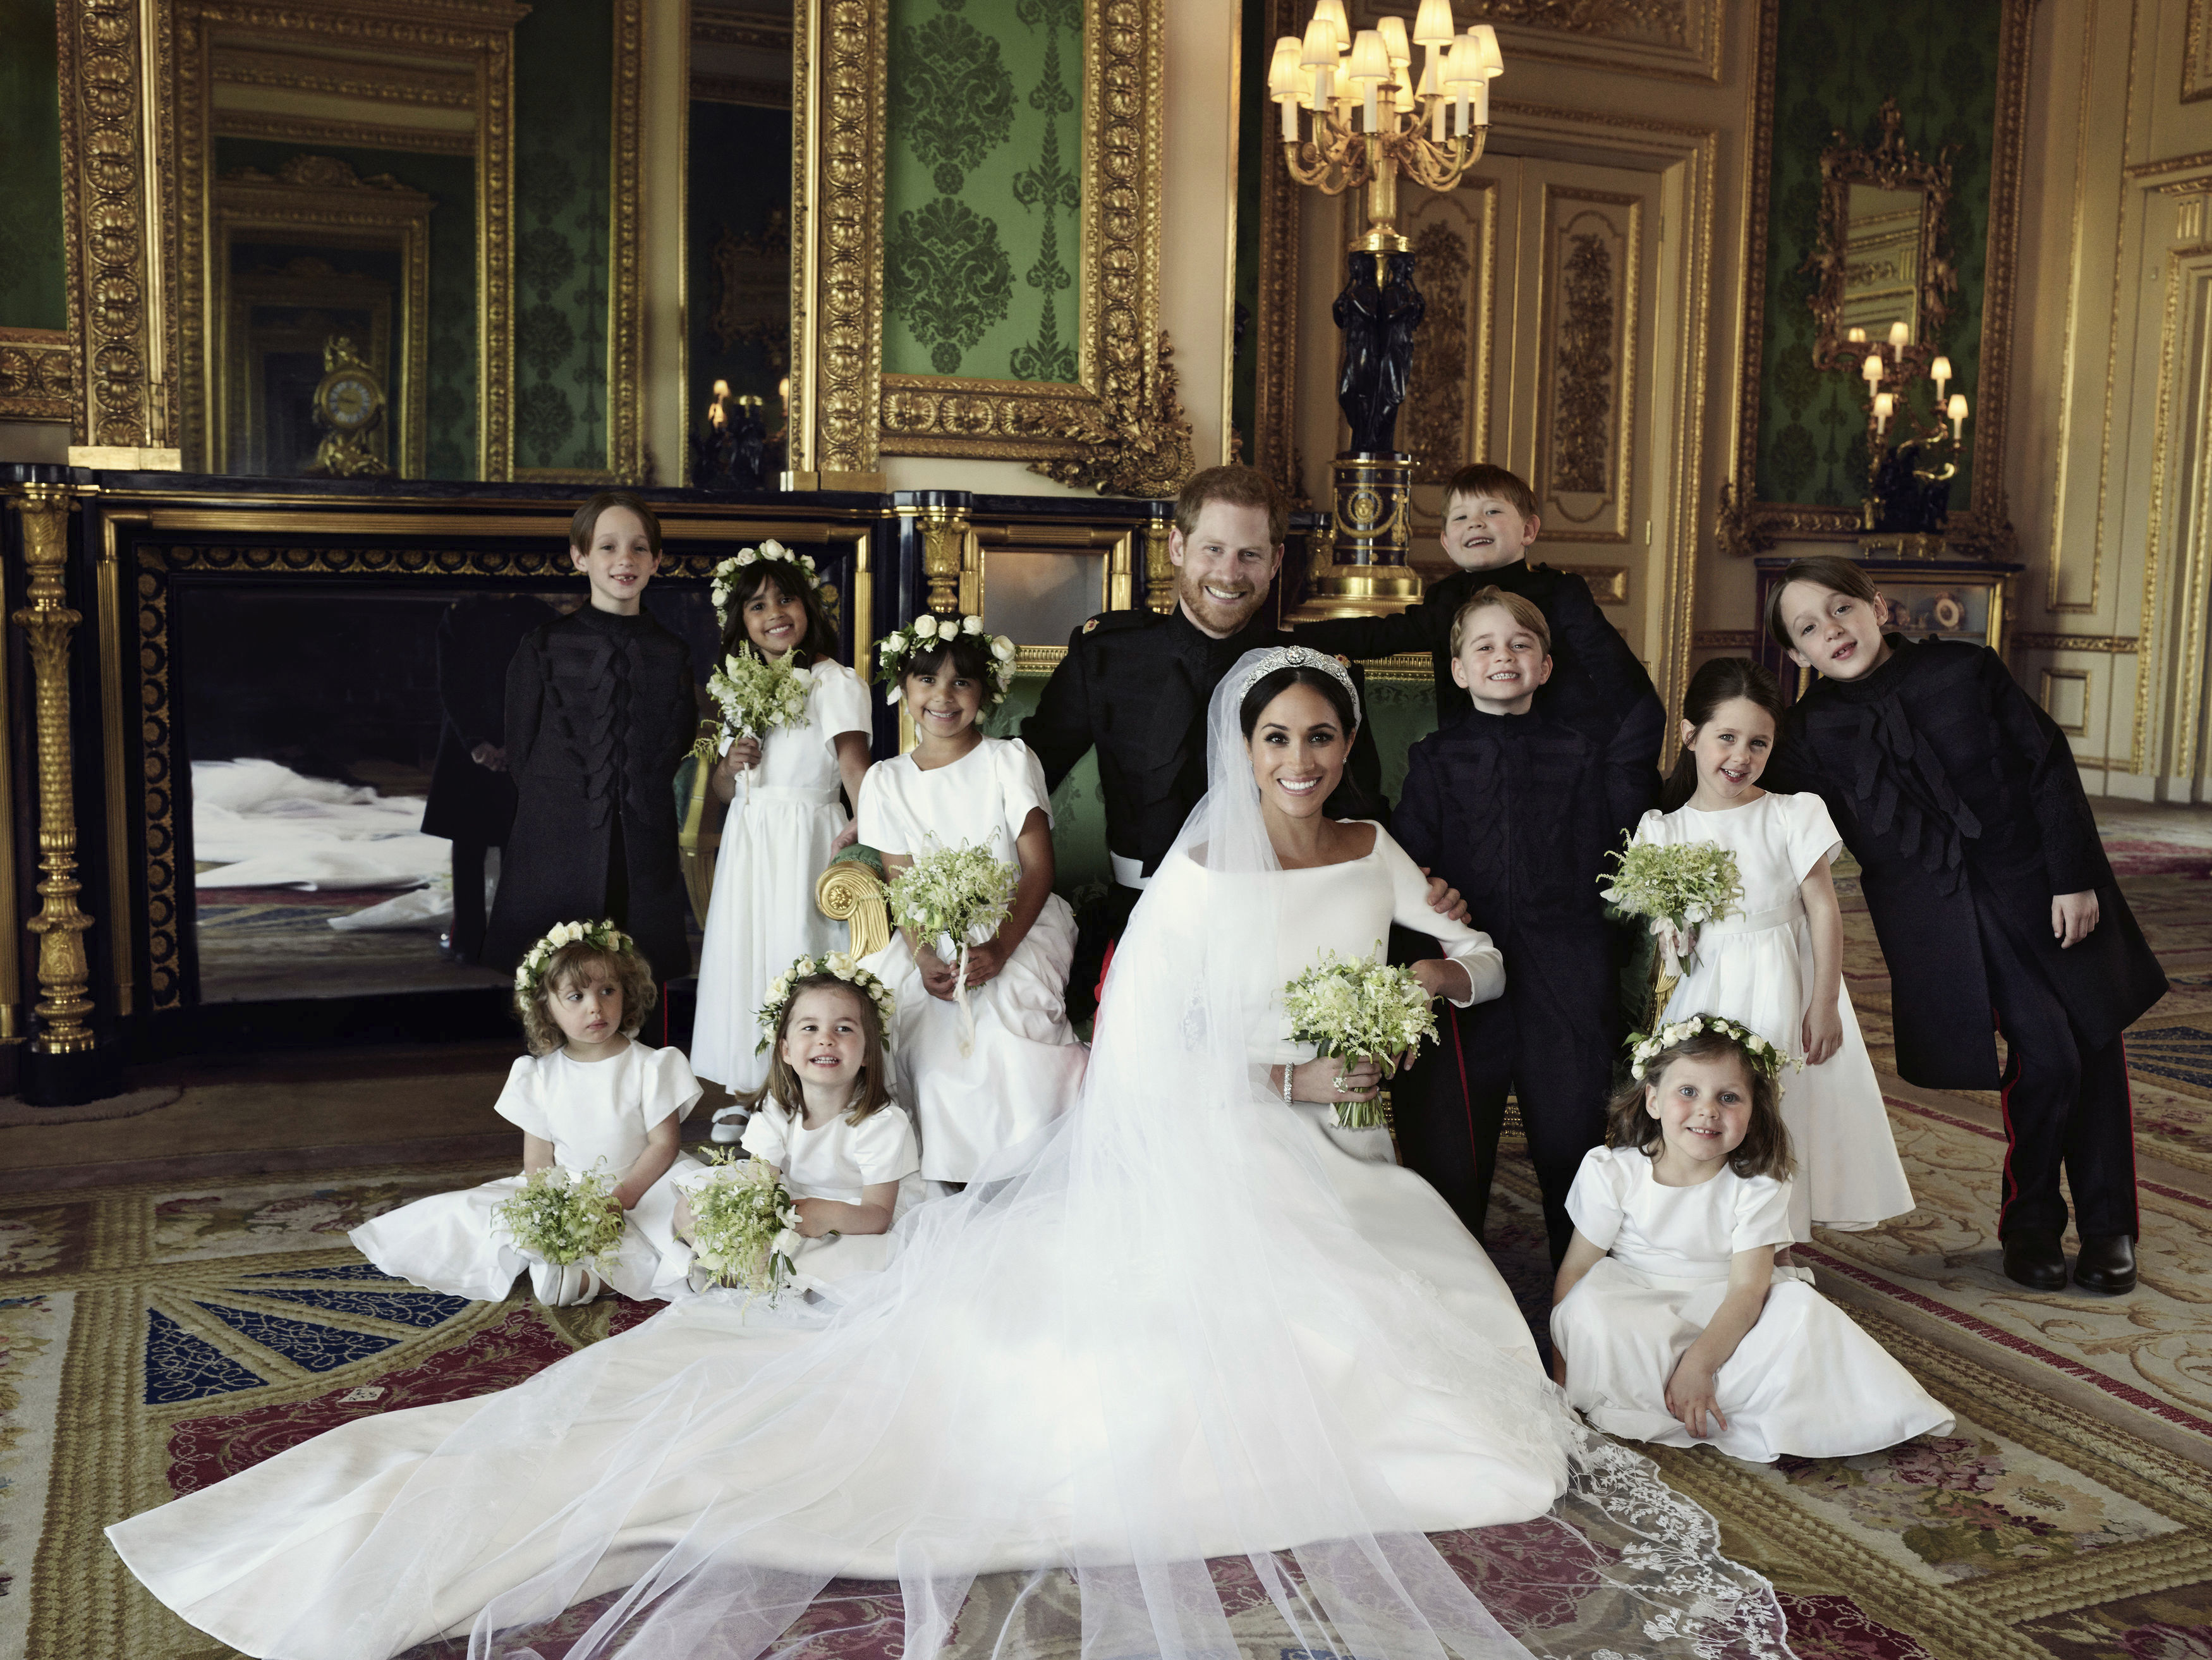 In this photo released by Kensington Palace on Monday May 21, 2018, shows an official wedding photo of Britain's Prince Harry and Meghan Markle, center, in Windsor Castle, Windsor, England, Saturday May 19, 2018. Others in photo from left, back row, Brian Mulroney, Remi Litt, Rylan Litt, Jasper Dyer, Prince George, Ivy Mulroney, John Mulroney; front row, Zalie Warren, Princess Charlotte, Florence van Cutsem. (Alexi Lubomirski/Kensington Palace via AP)